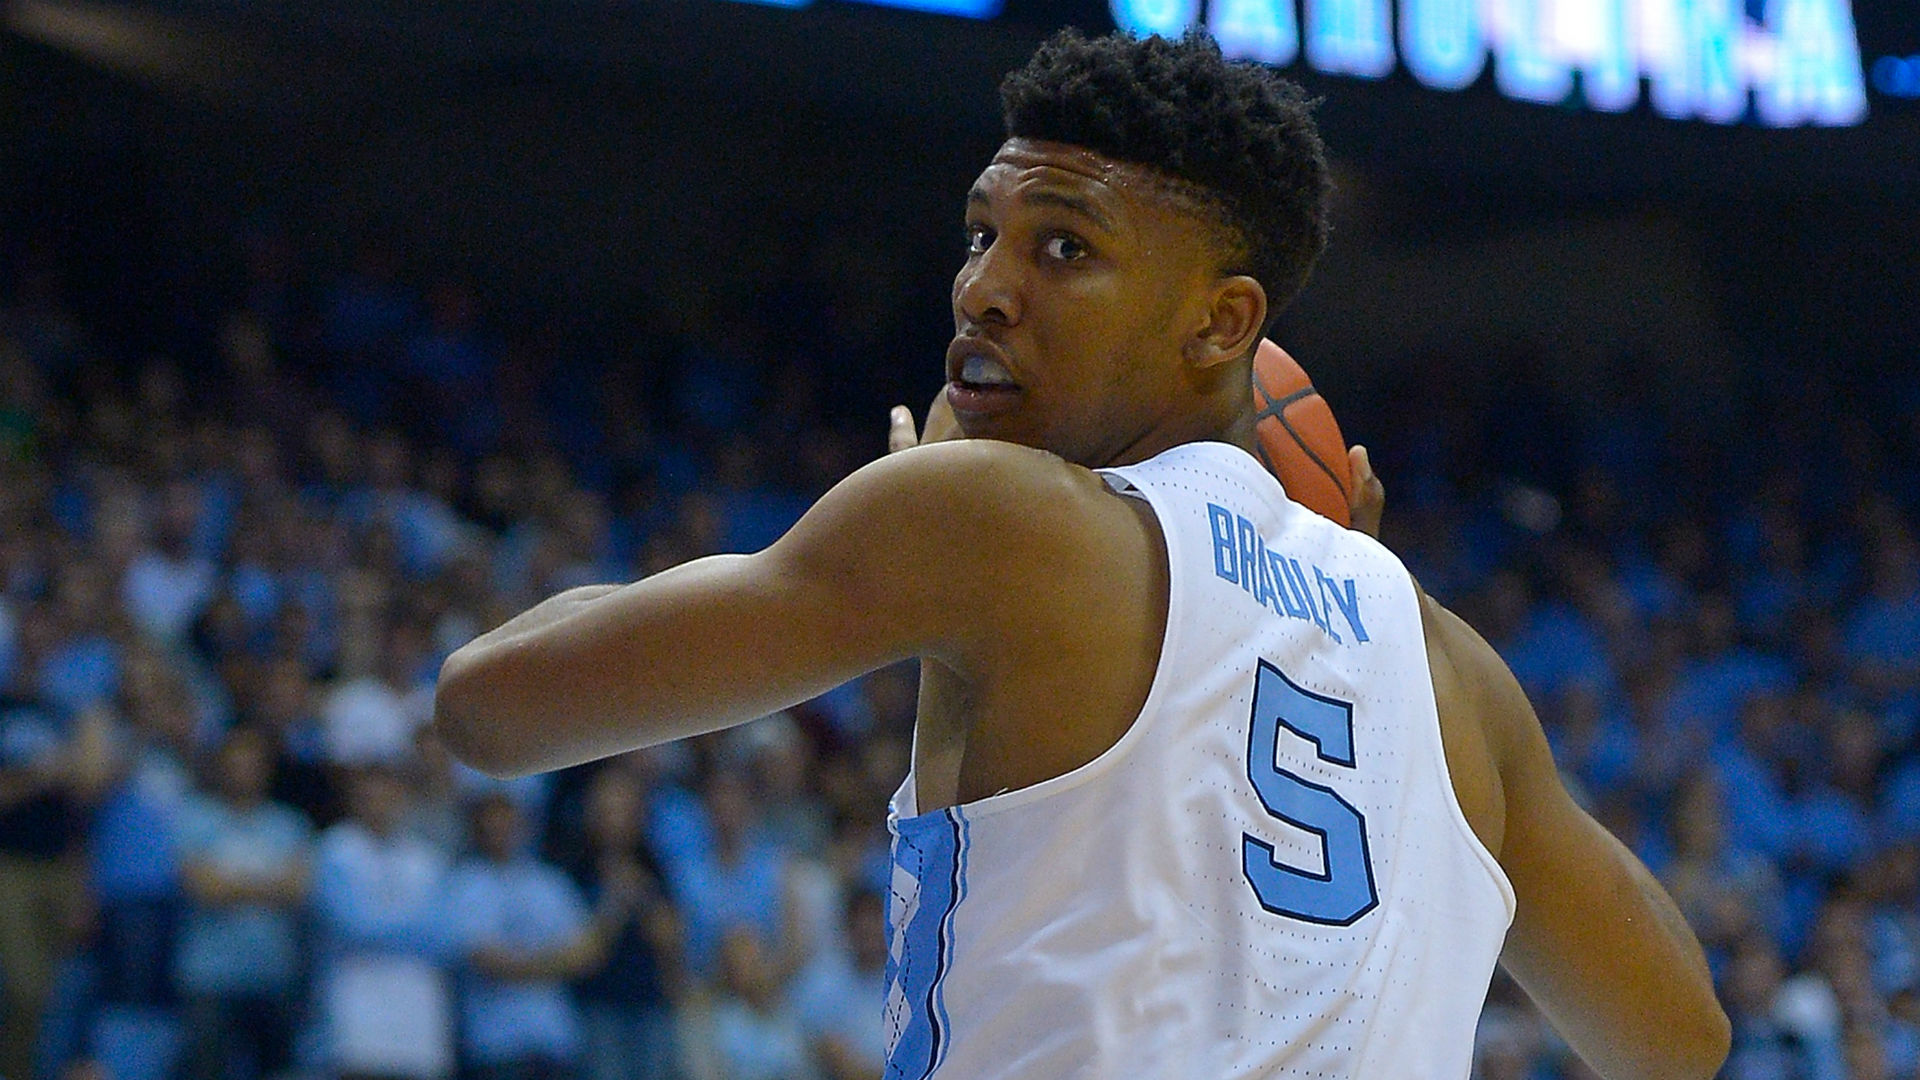 UNC's Tony Bradley remaining in National Basketball Association draft